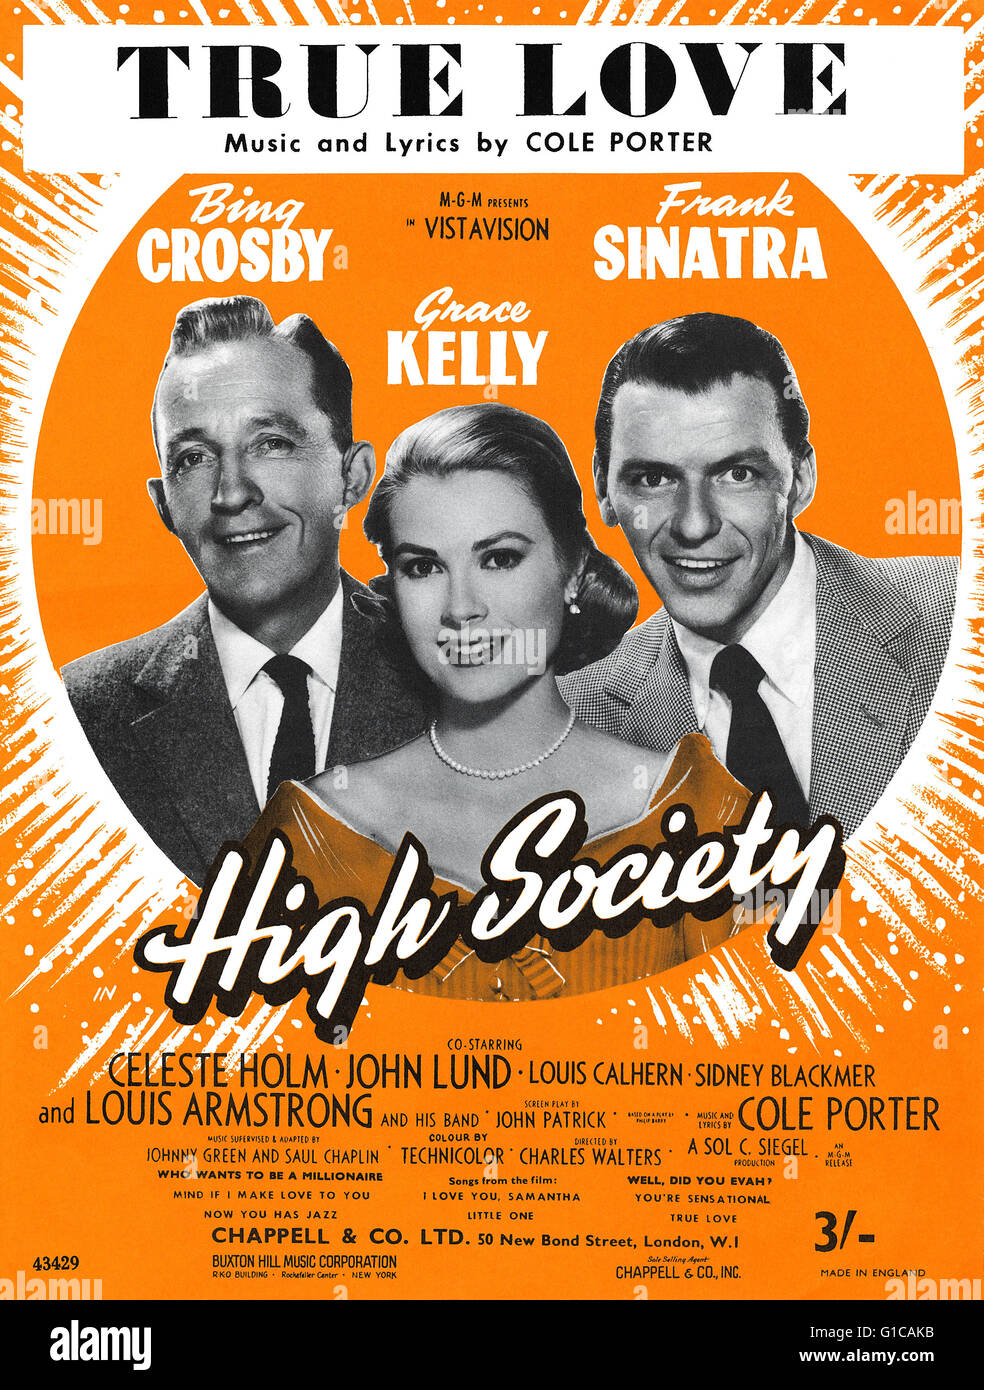 UK sheet music for the Cole Porter song True Love from the 1956 film High Society, starring Bing Crosby, Grace Kelly - Stock Image